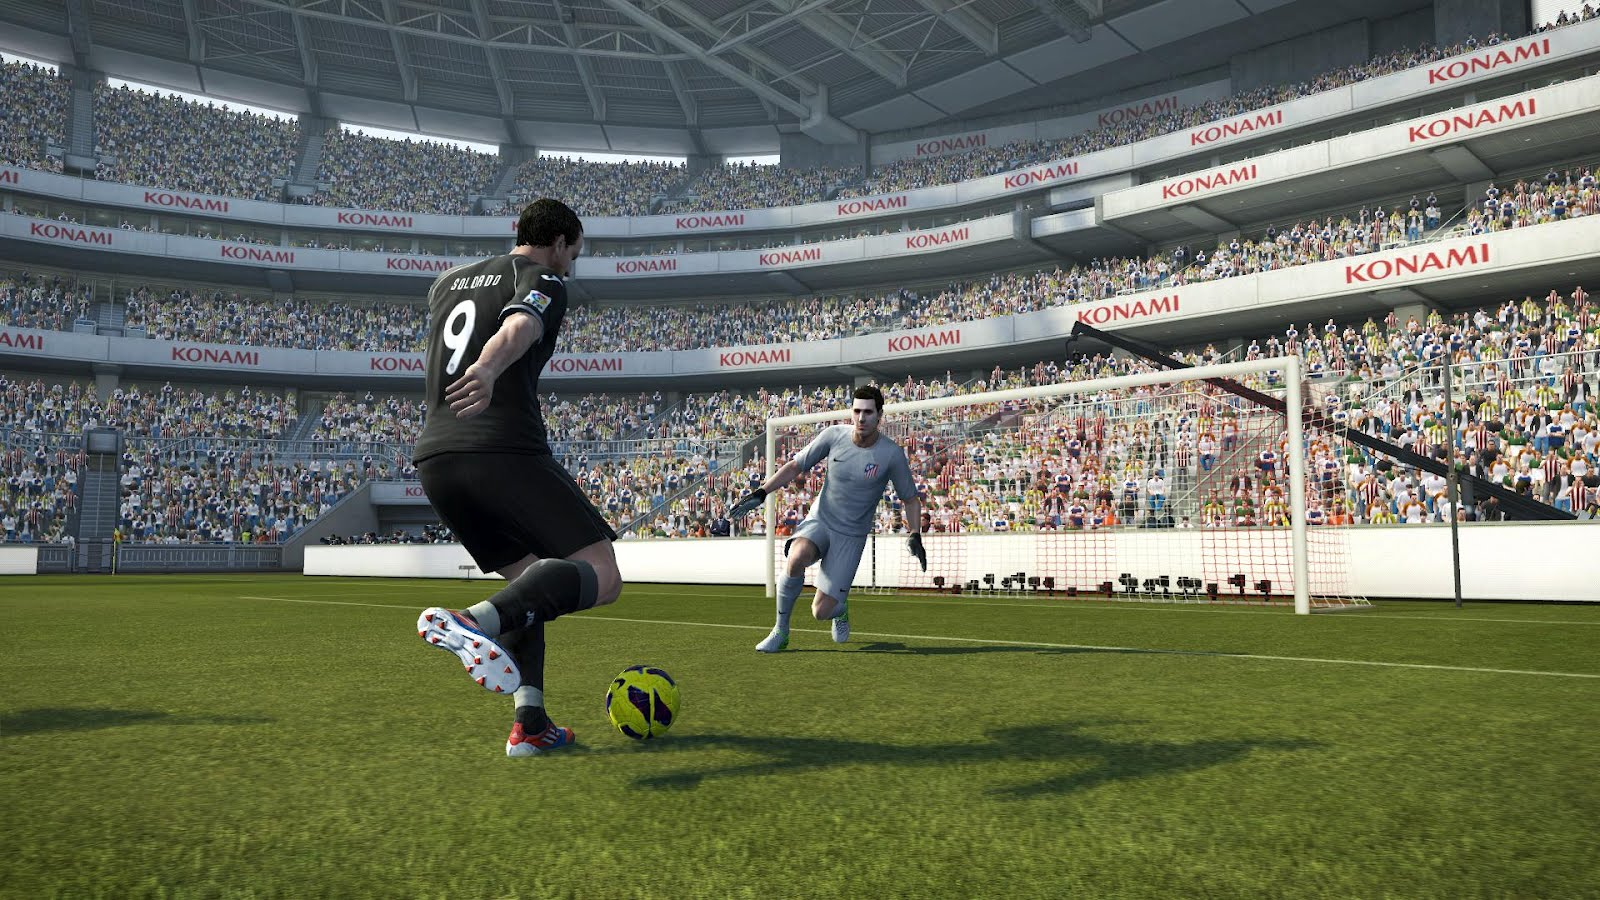 I Love Playing Pro Evolution Soccer Pesedit 2013 Demo Patch  picture wallpaper image